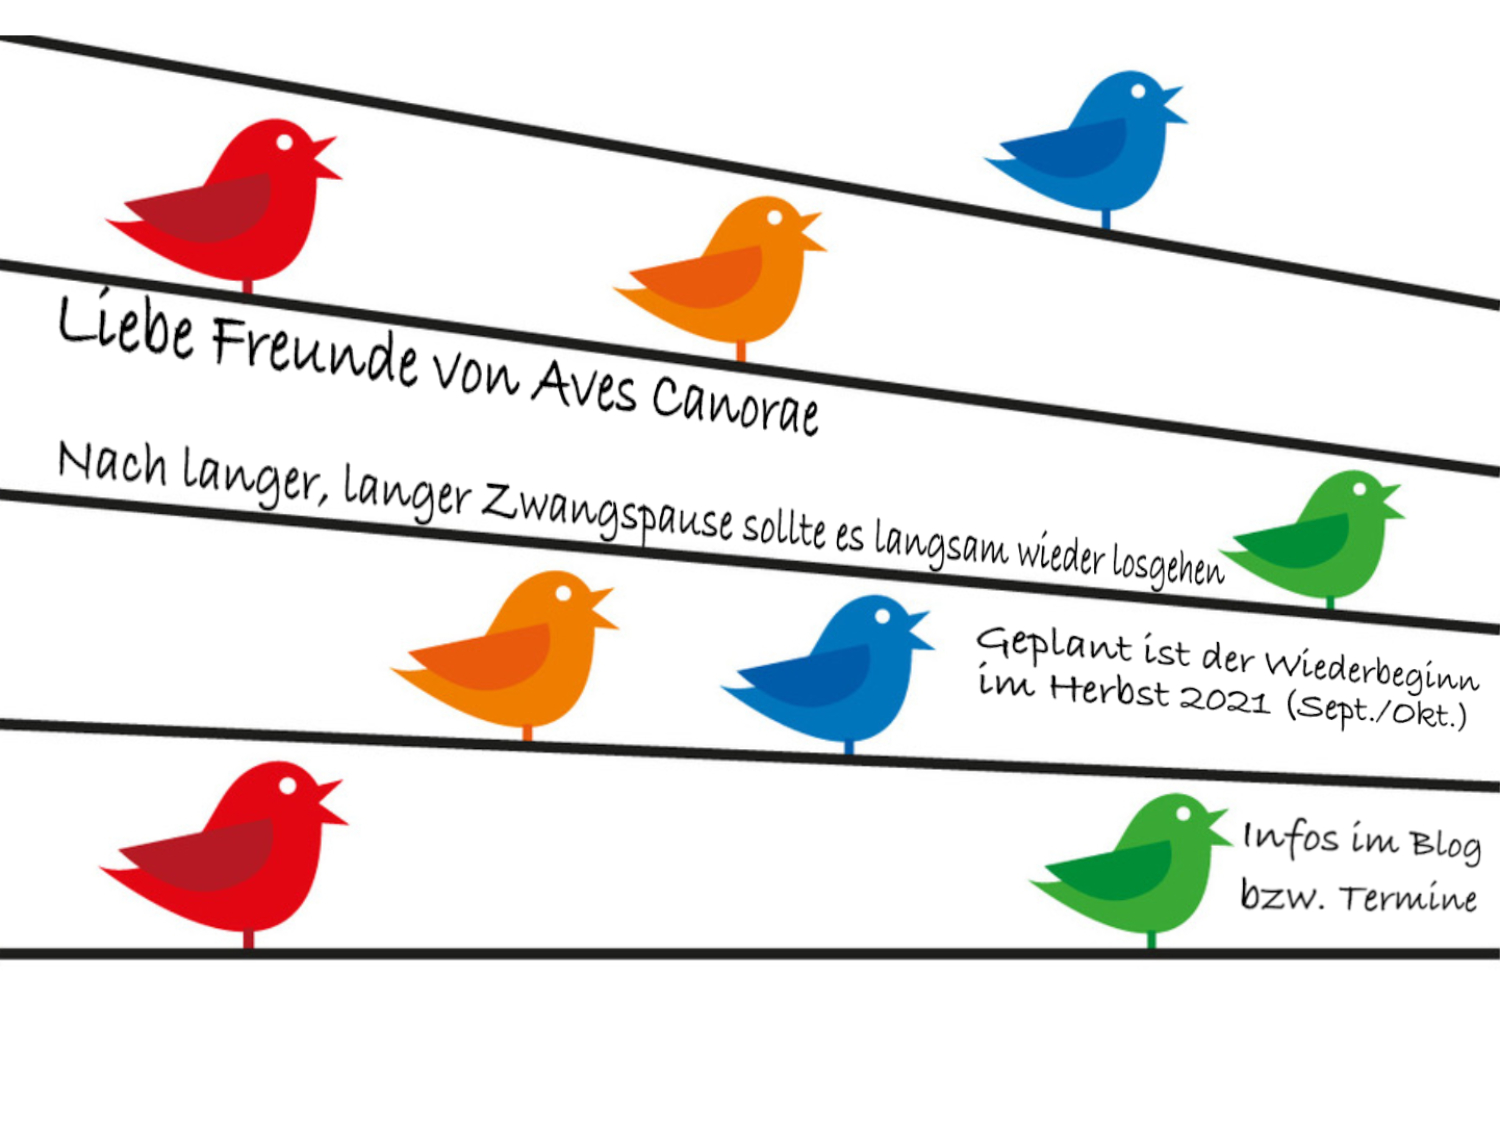 Aves Canorae